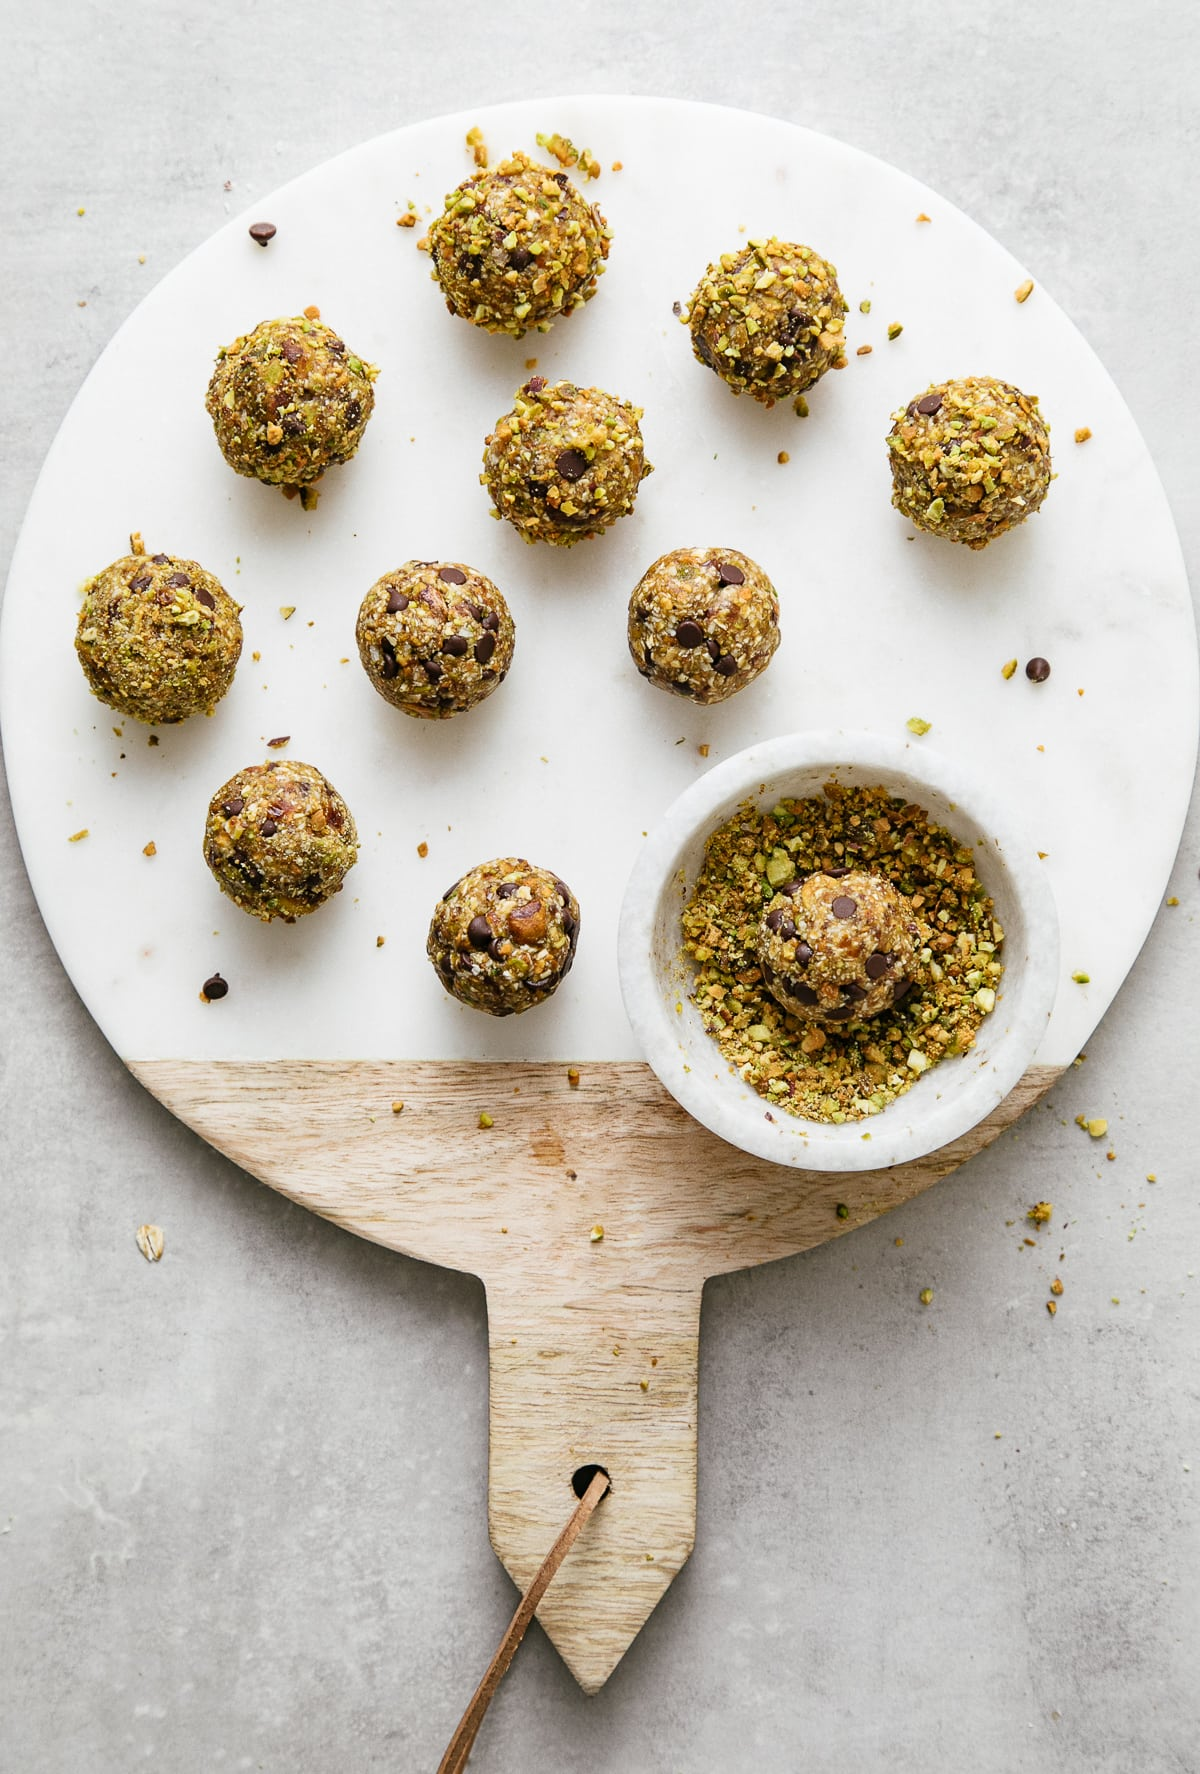 top down view showing rolling no bake cookie balls in crushed pistachios.